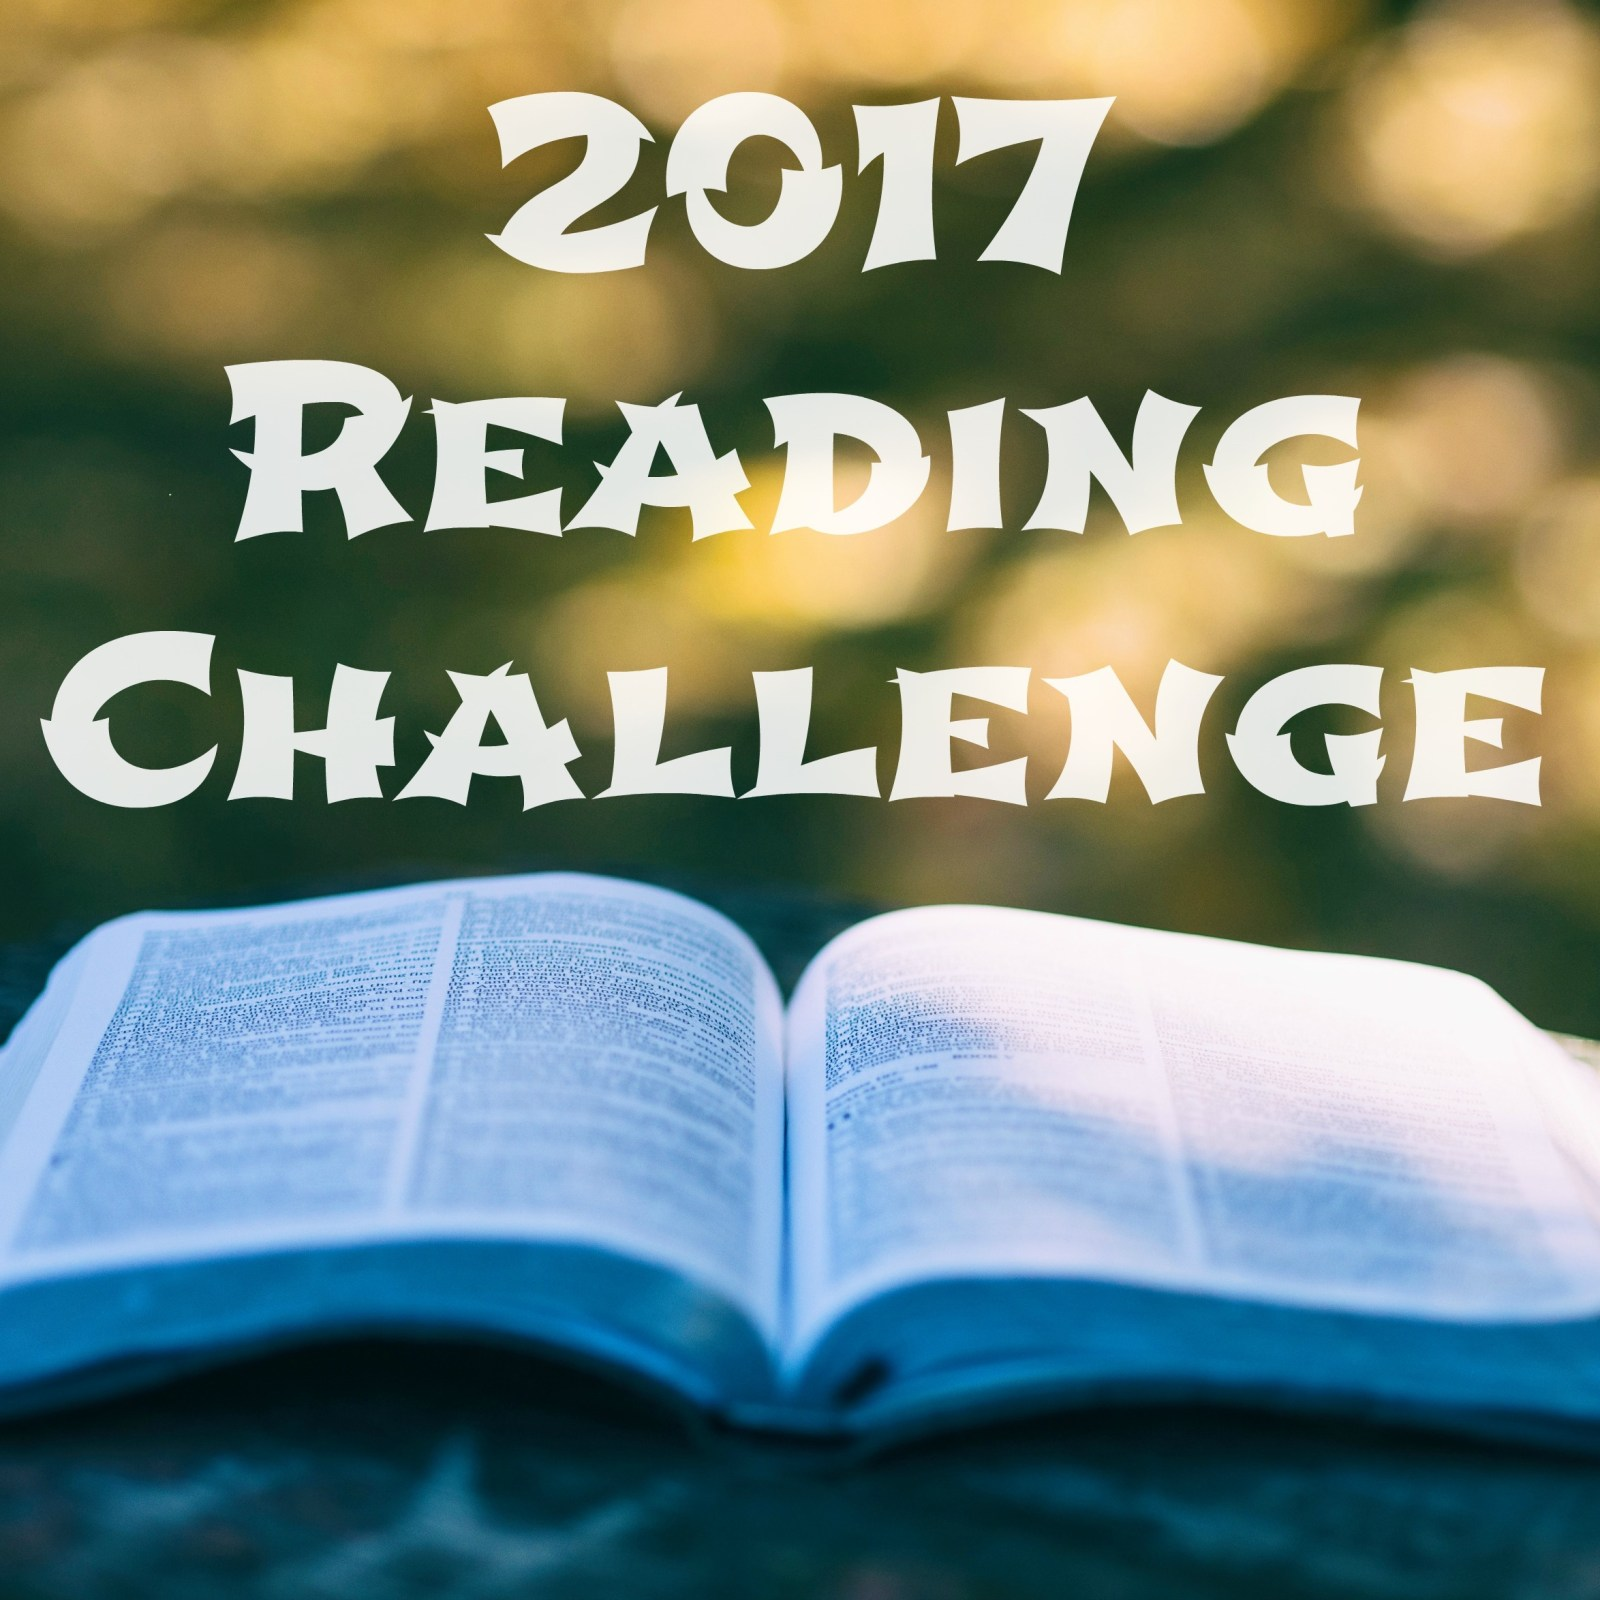 2017 Reading Challenge: A book published between 1910 and 1919.